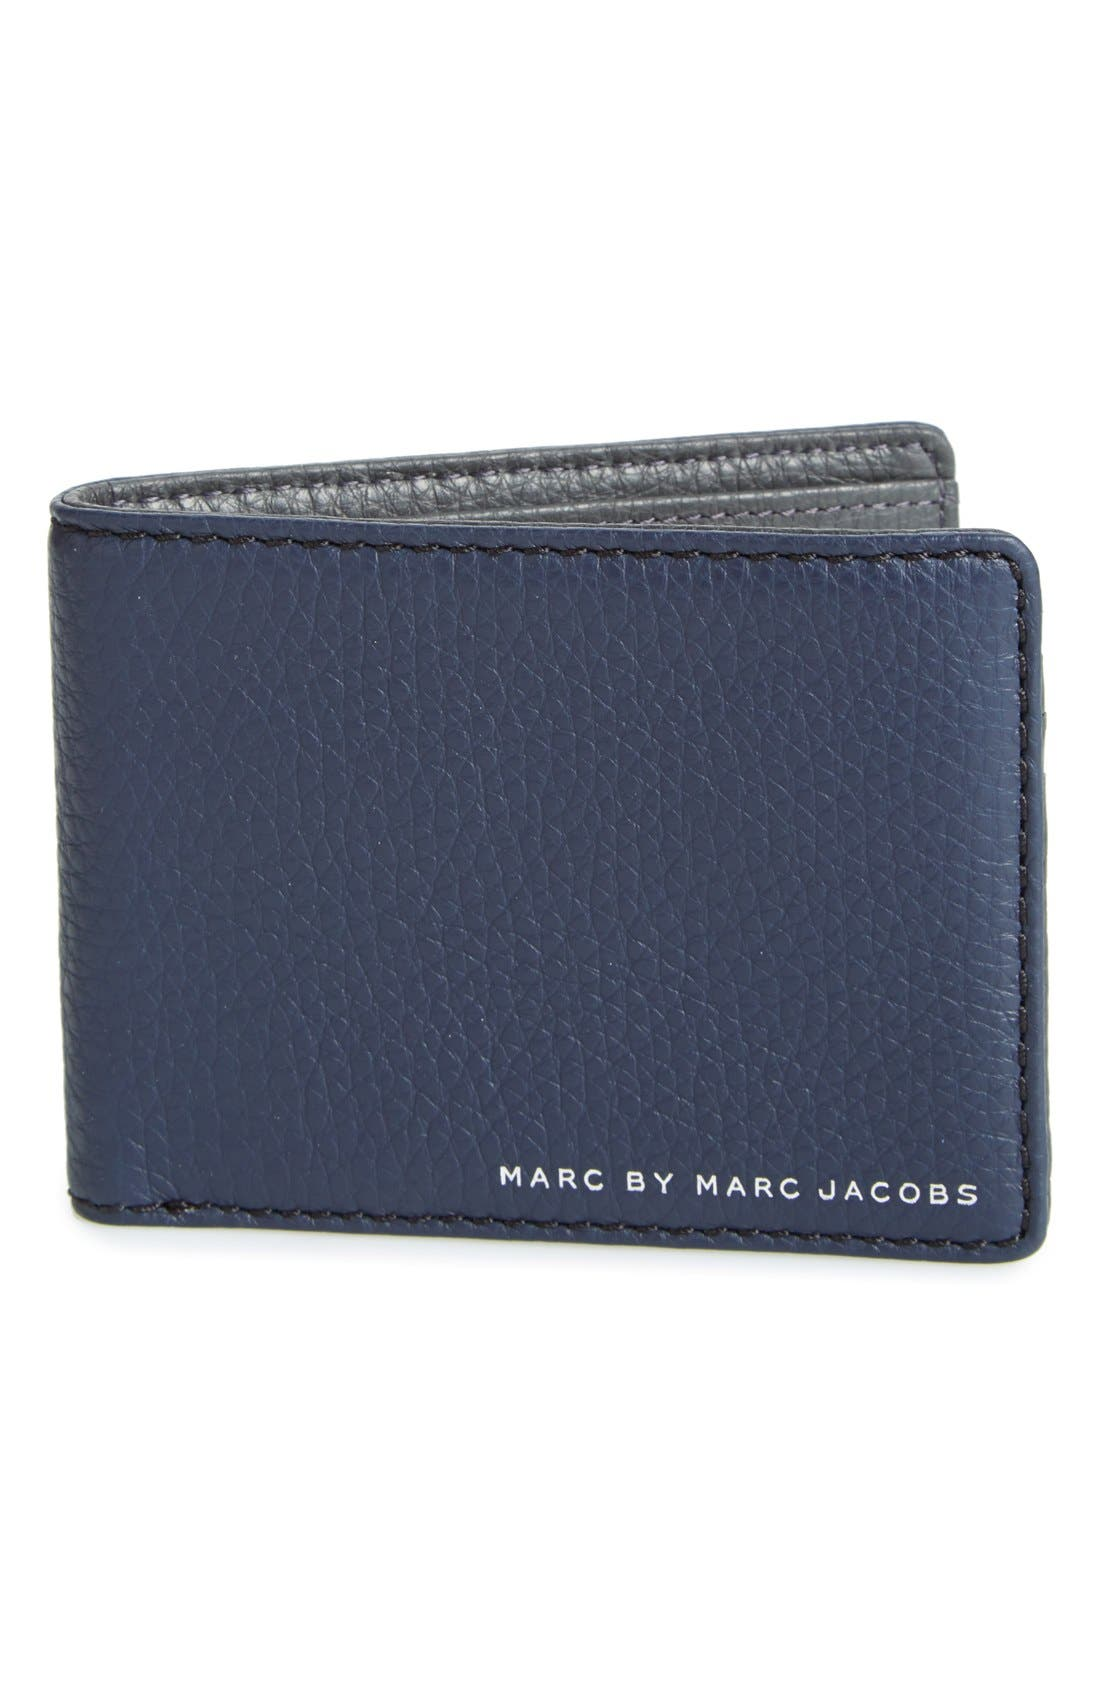 'Martin' Leather Bifold Wallet,                             Main thumbnail 1, color,                             495